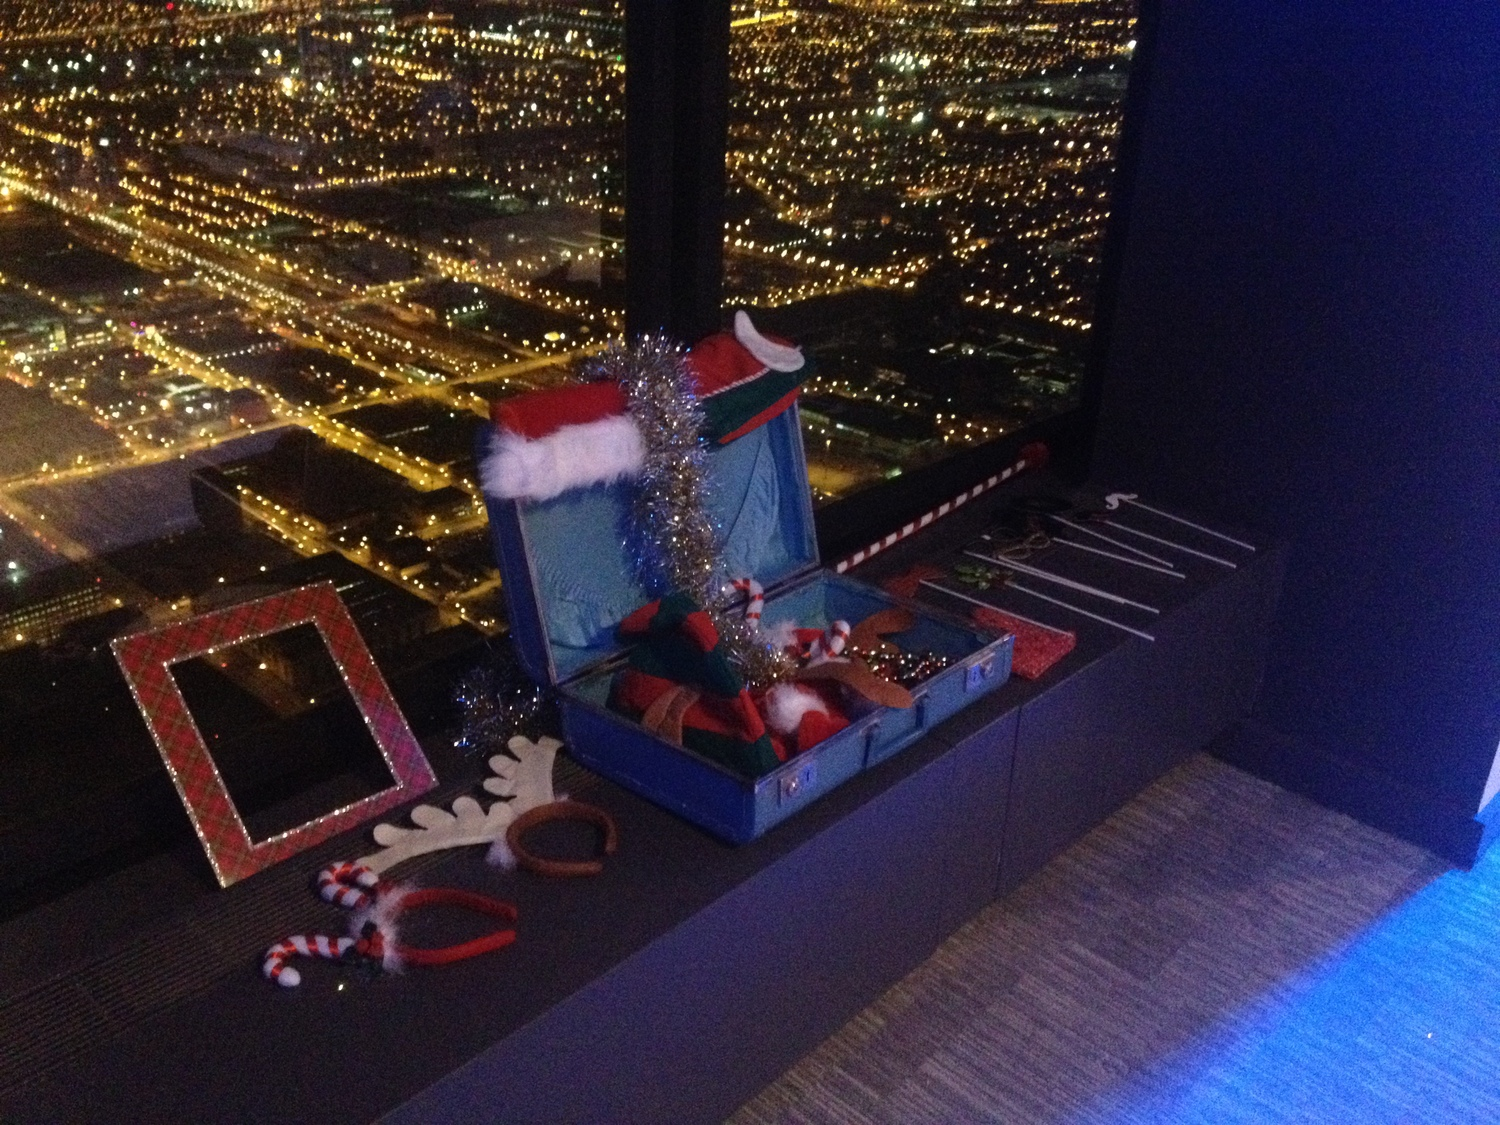 99th Floor Skydeck Photo Booth Rental At The Willis Tower Fotio